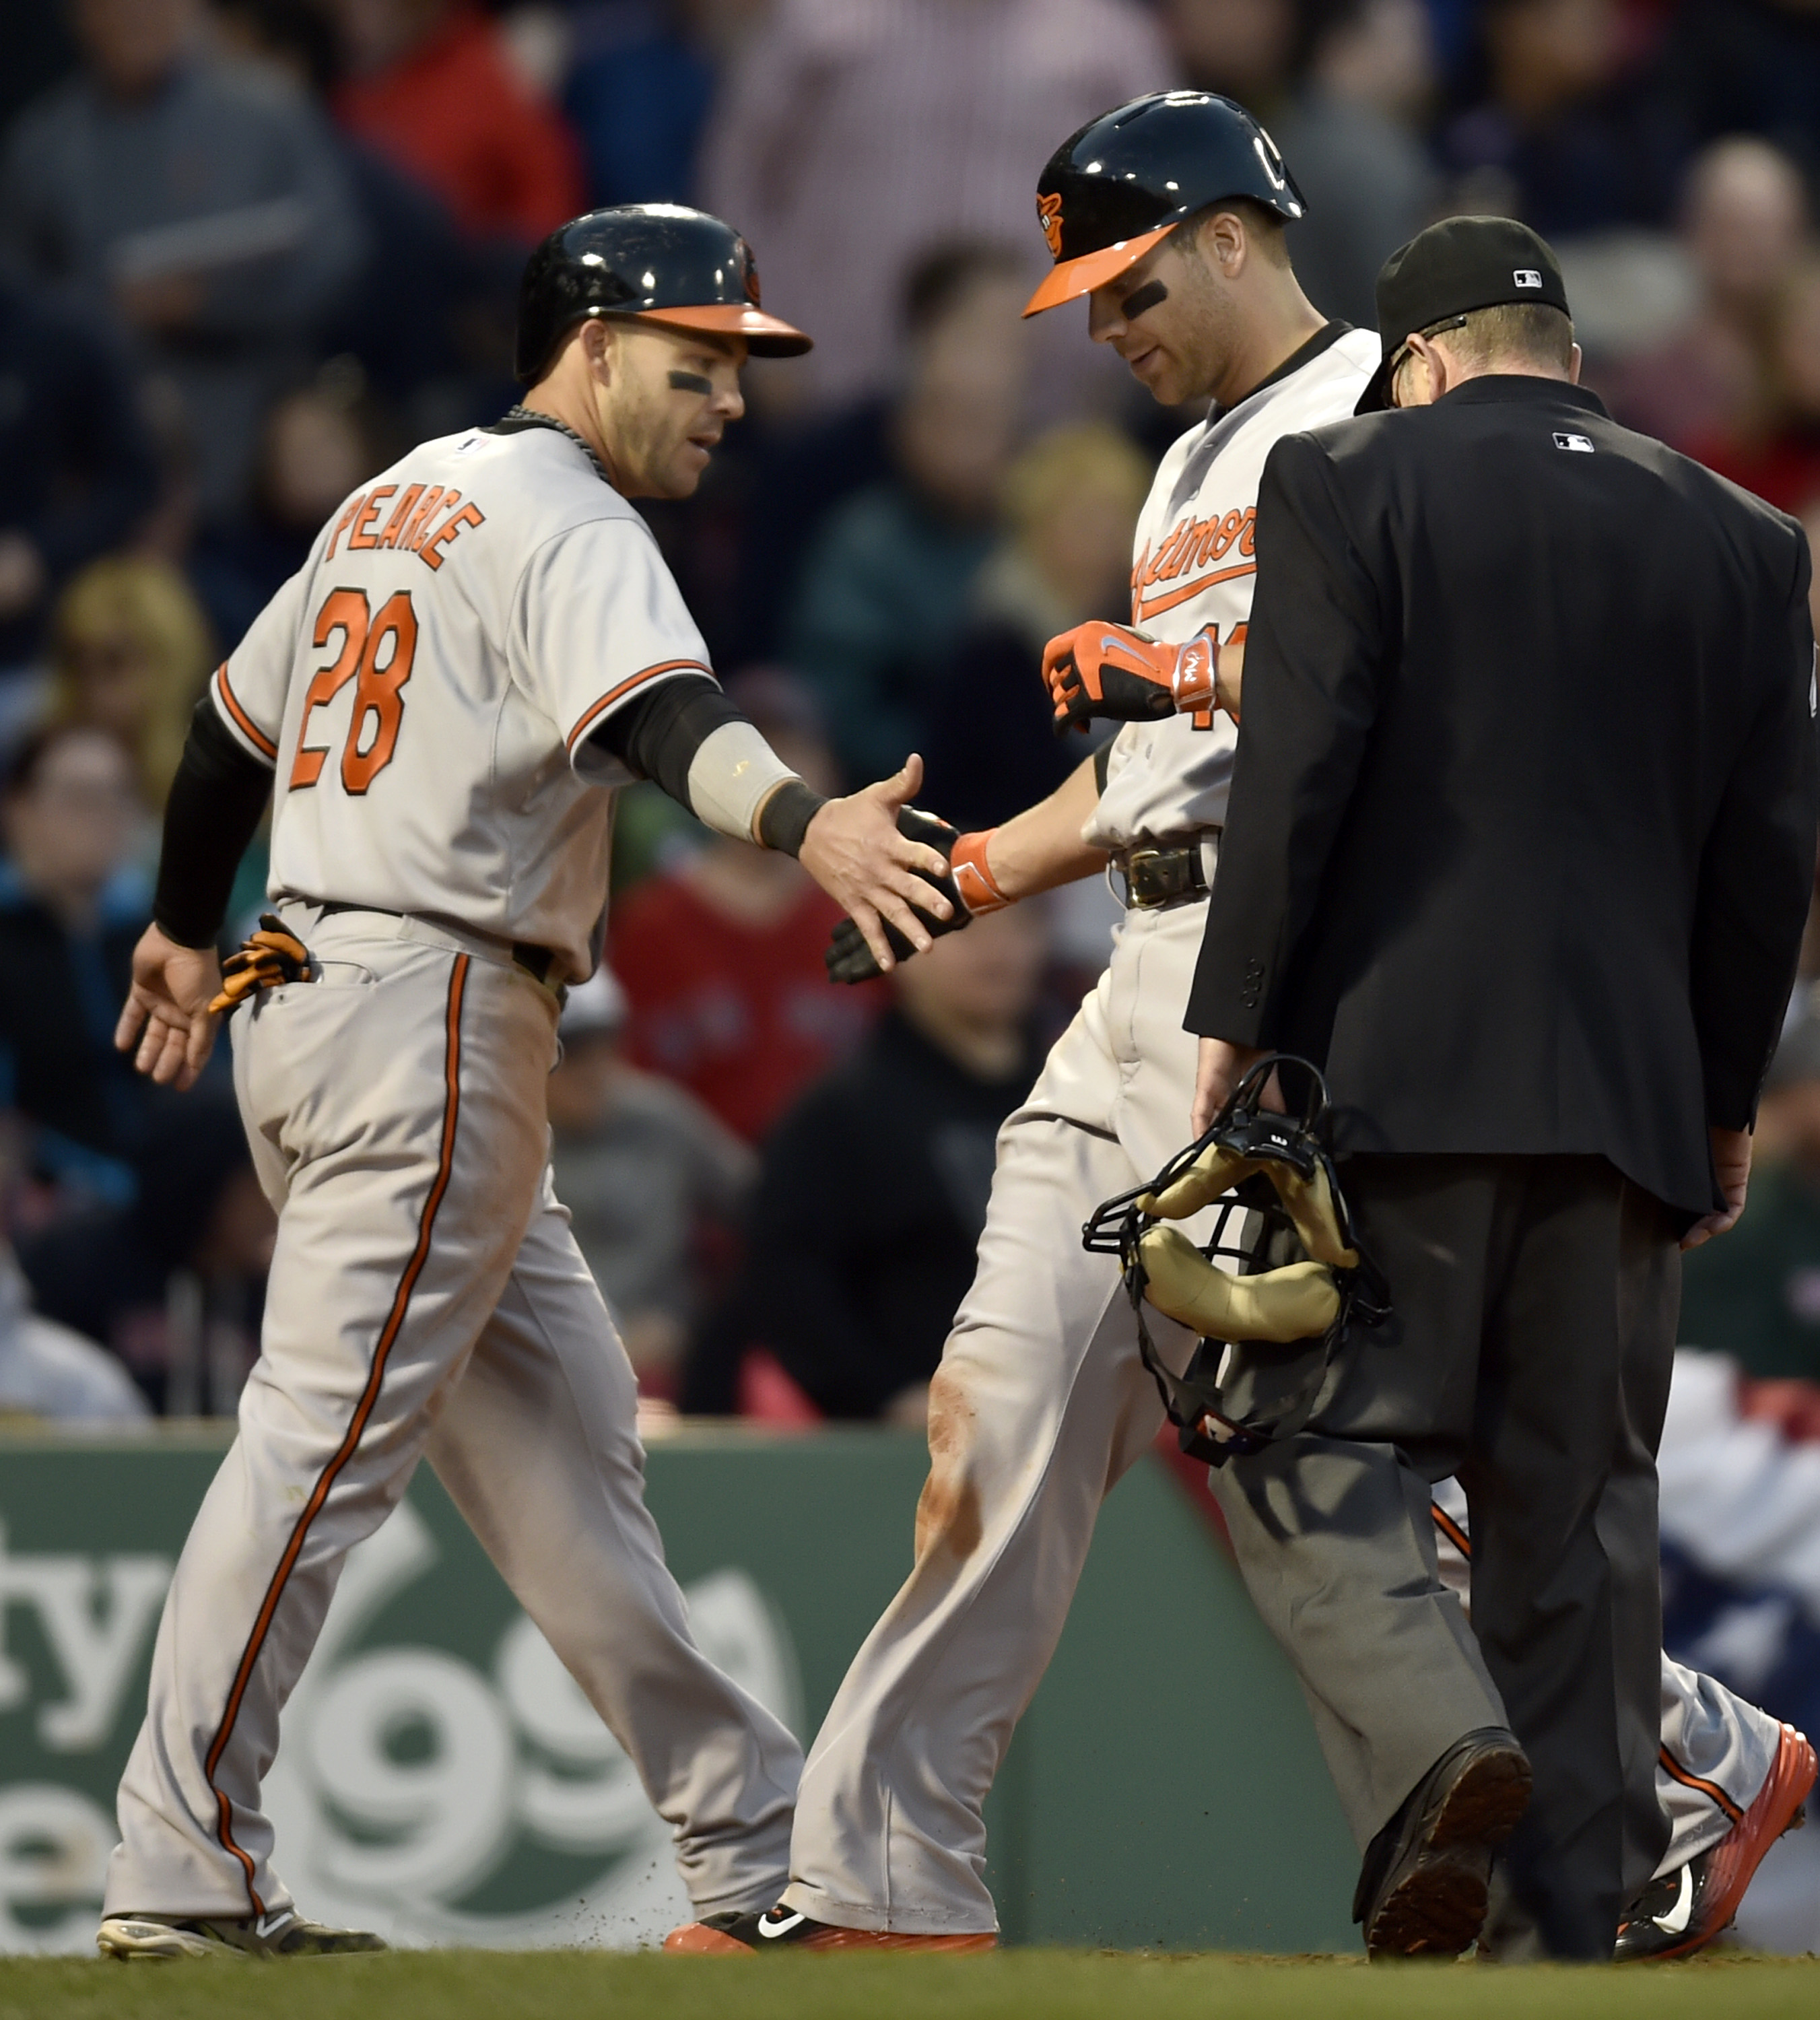 Baltimore Orioles' Chris Davis, center, slaps the hand of teammate Steve Pearce as he crosses home plate after hitting a two-run home run in the ninth inning of a baseball game against the Boston Red Sox, Saturday, April 18, 2015, in Boston. (AP Photo/Gre